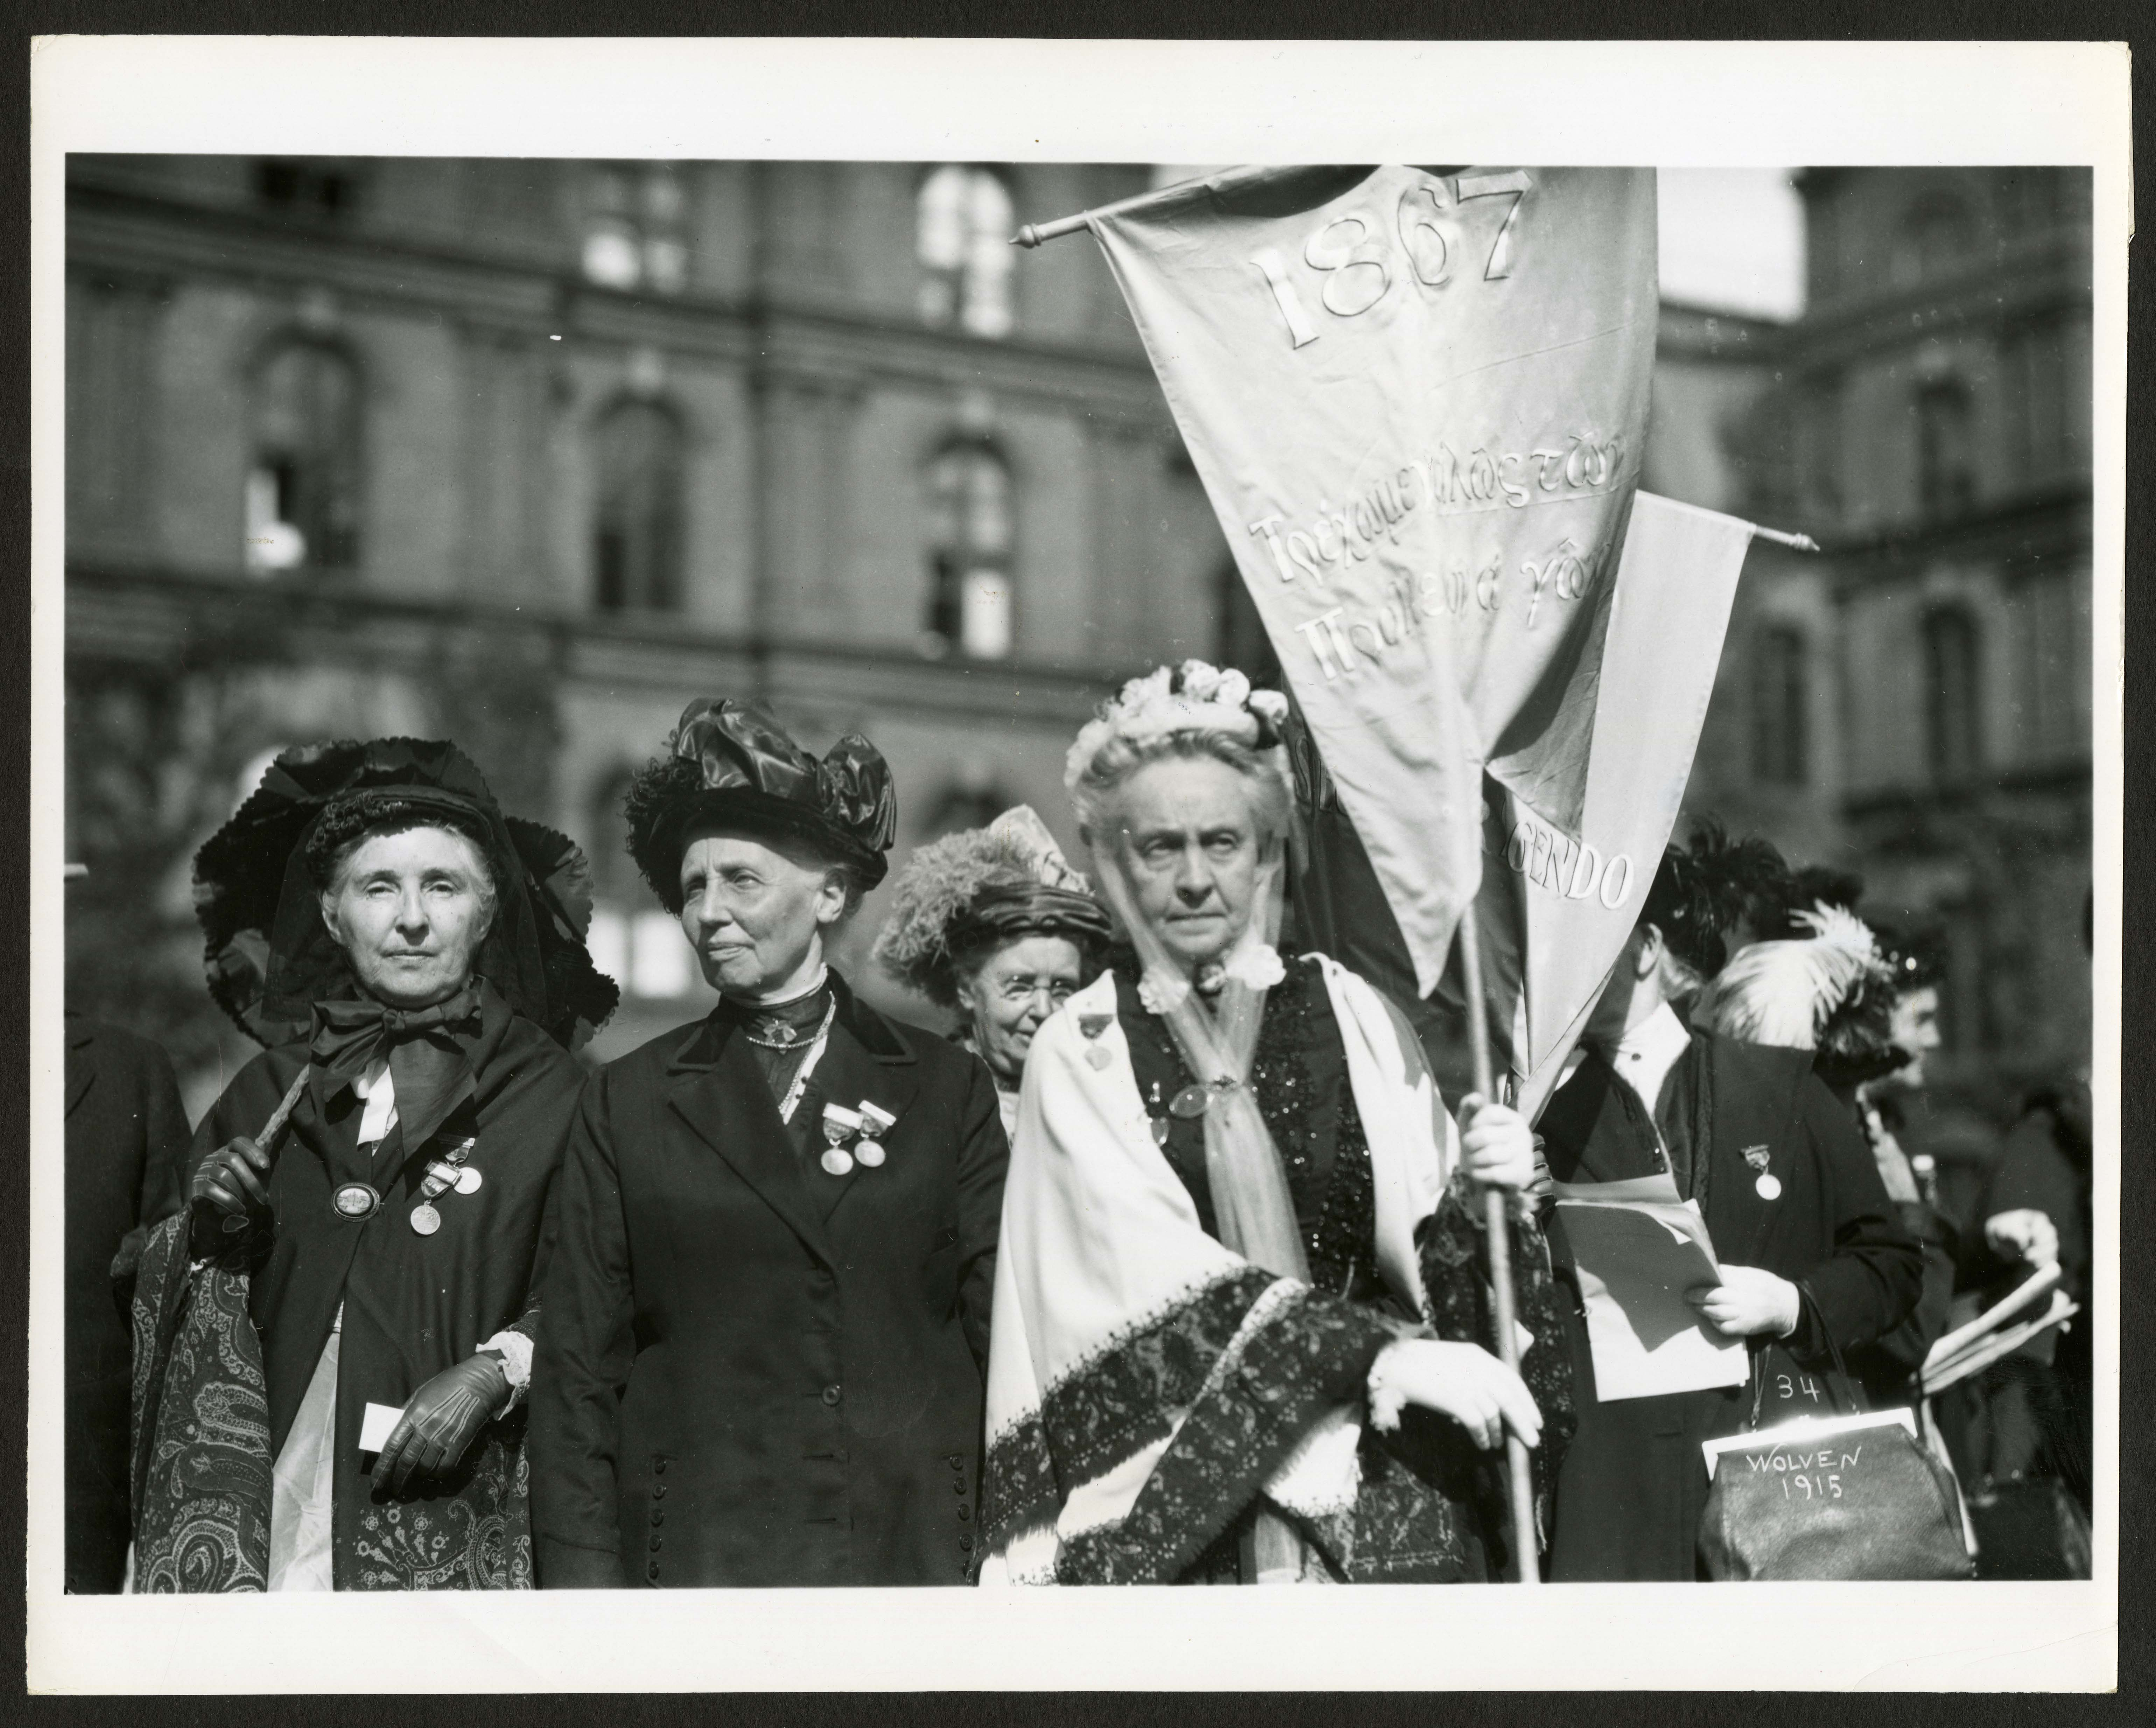 B & W image of three older women, standing outside in front of a crowd of other women. One woman